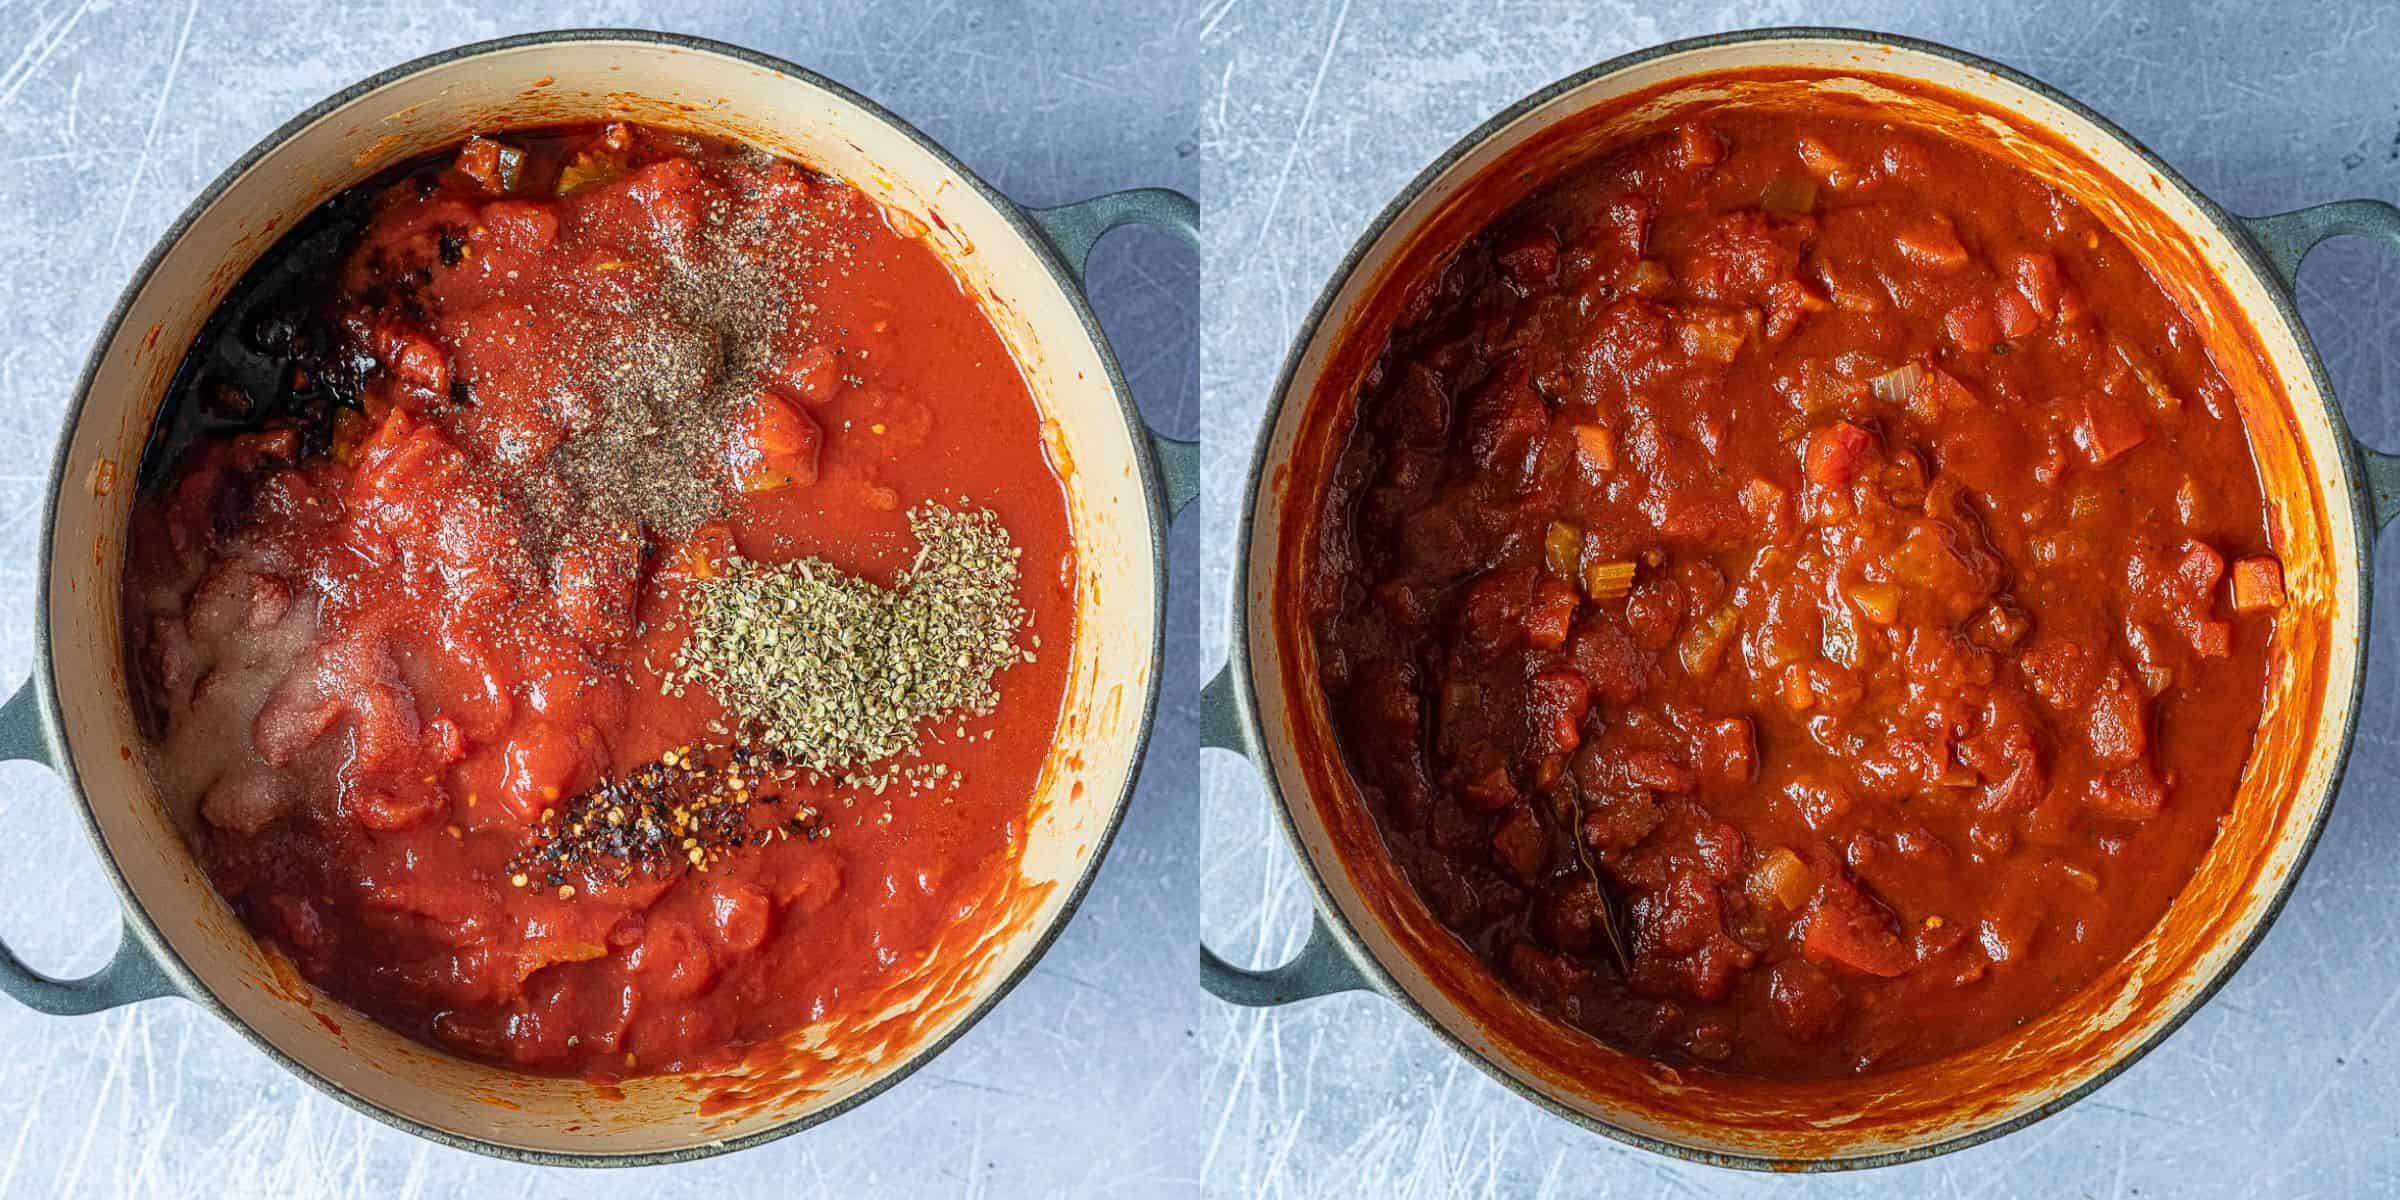 Step 2, a two image collage of adding the tinned tomatoes and seasonings and simmering the sauce.